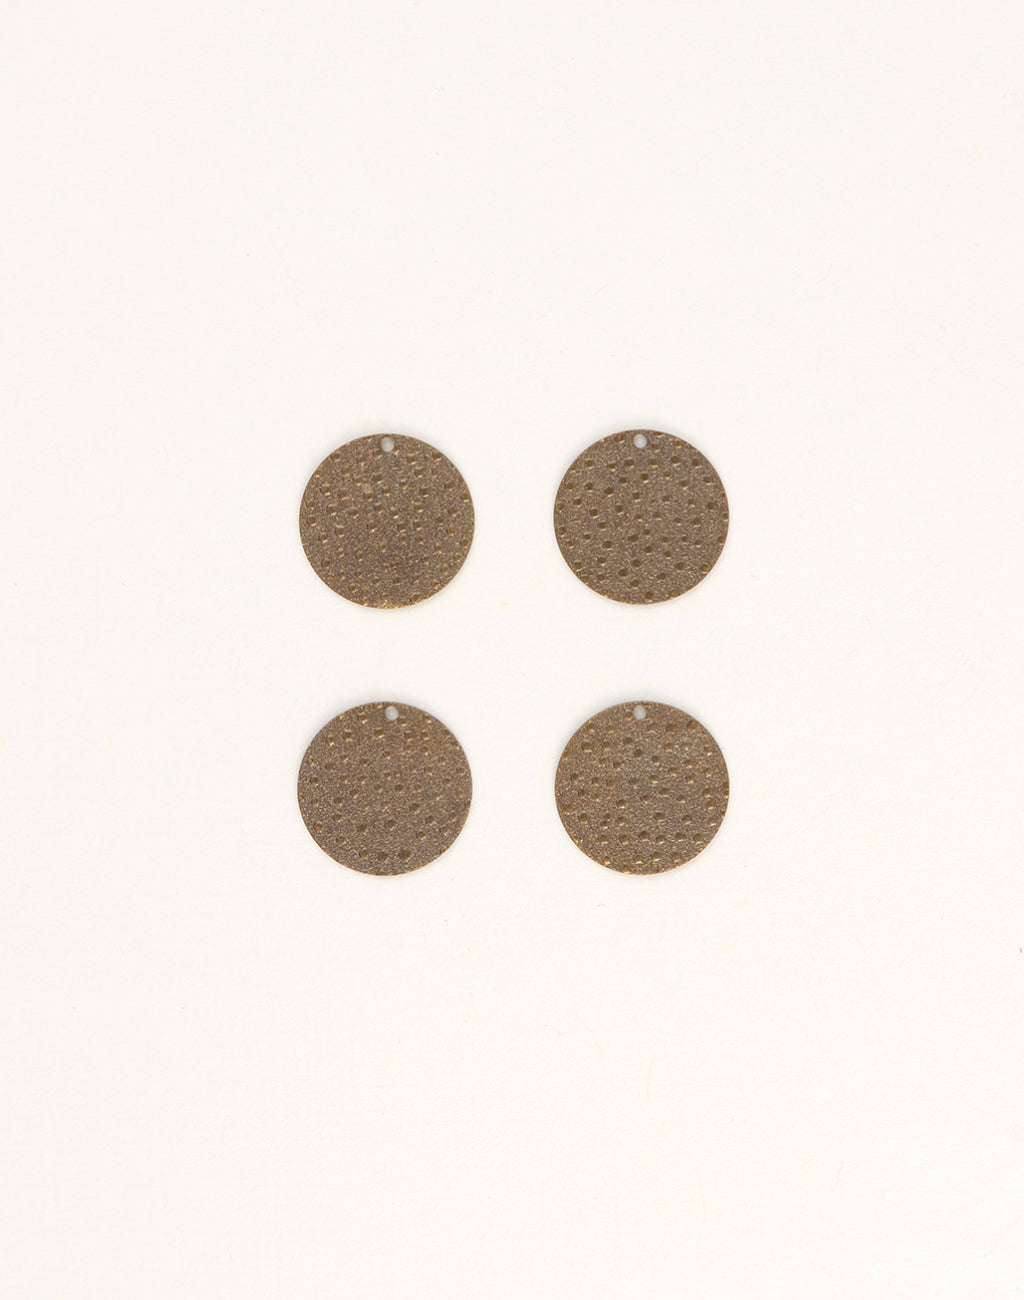 Embossed Dots, 14mm, (4pcs)